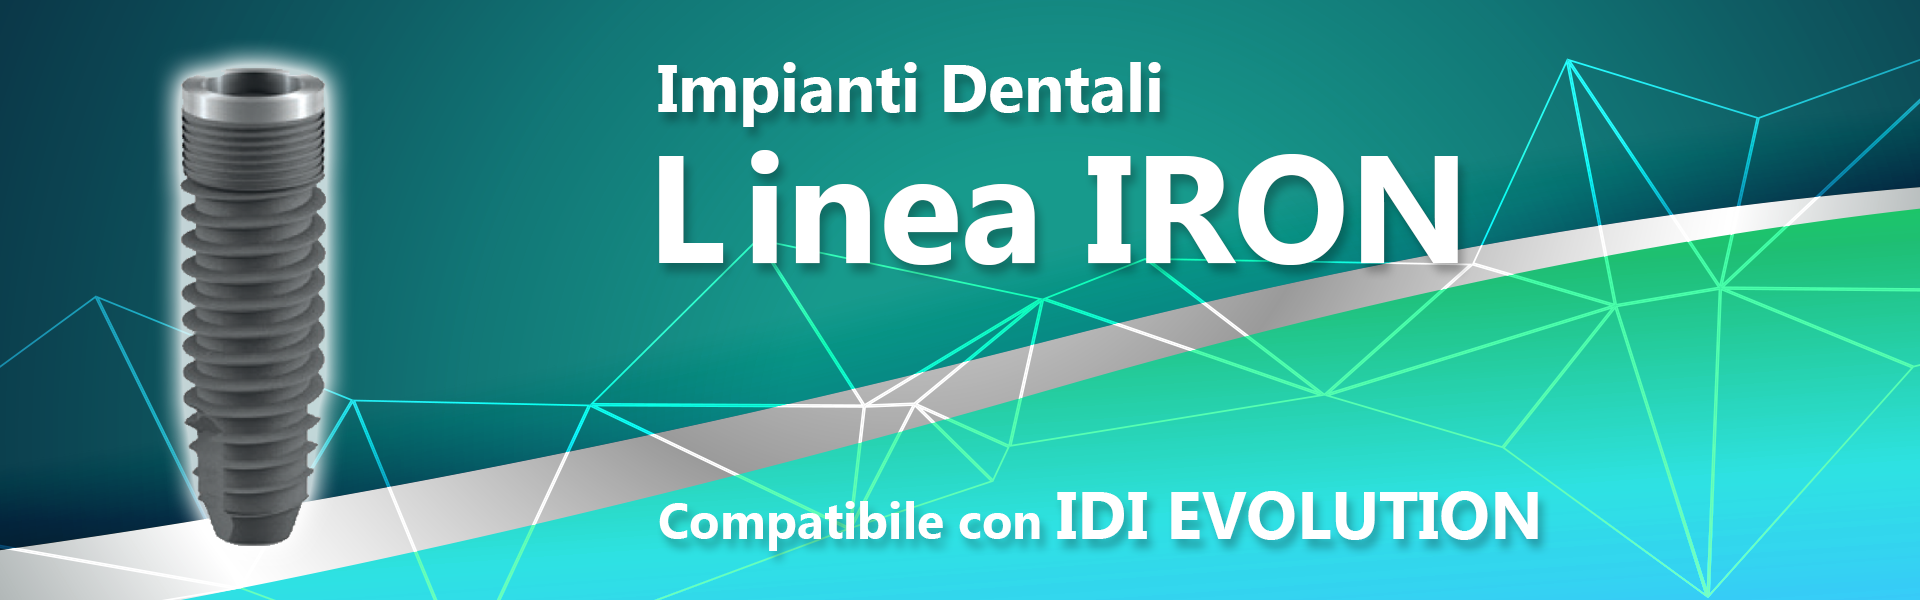 Linea IRON (compatibile con IDI EVOLUTION)